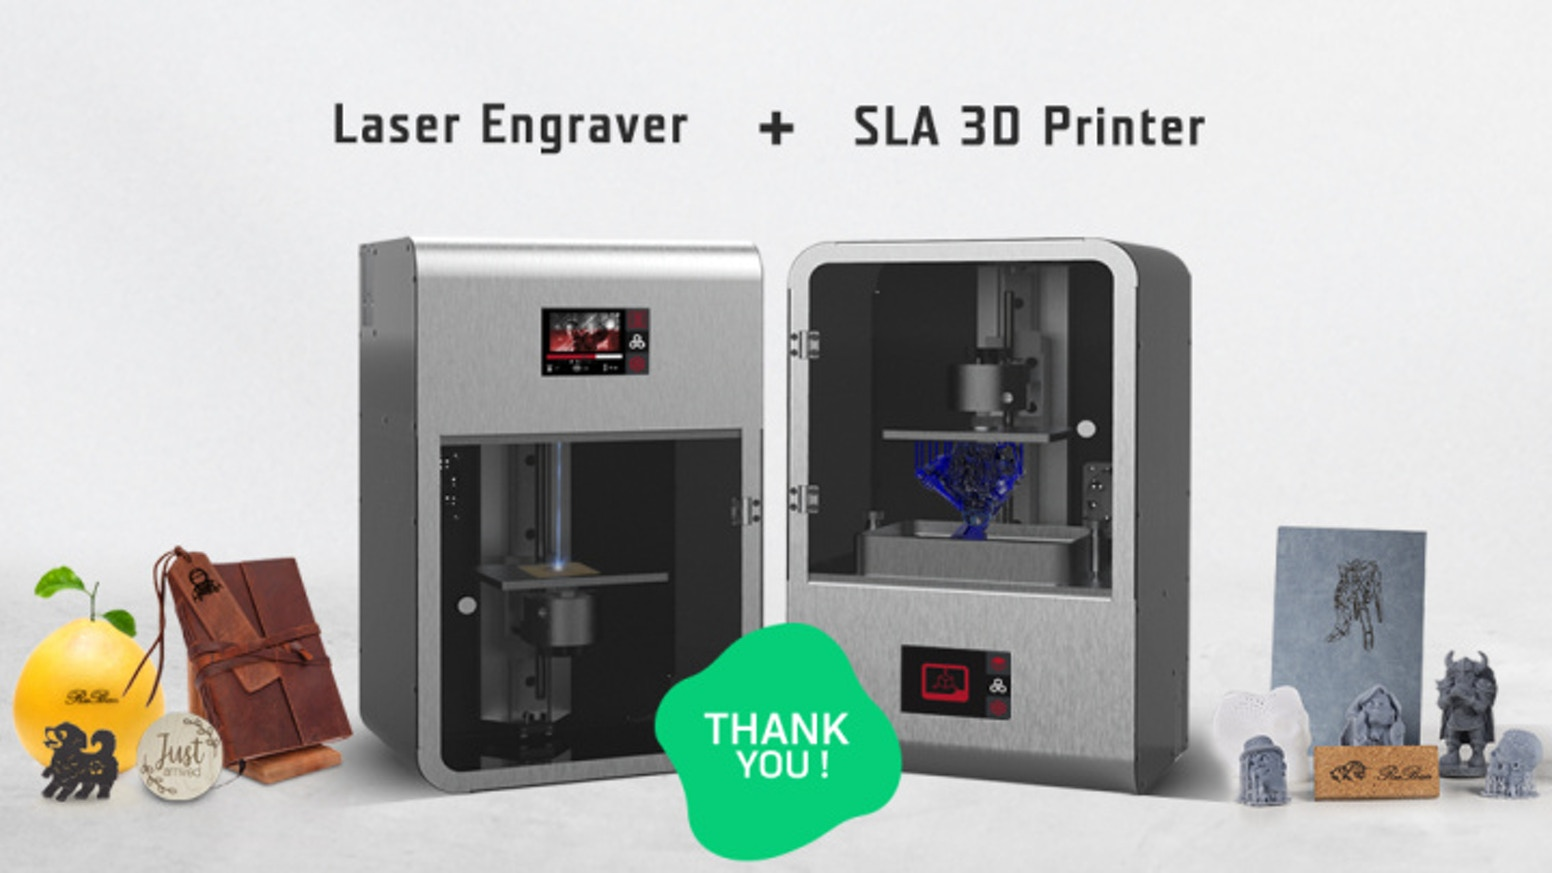 High precision, fast and versatility. Rubanmaster is a 3-in-1 SLA 3D printer, laser engraver and cutter to make creation come to life.